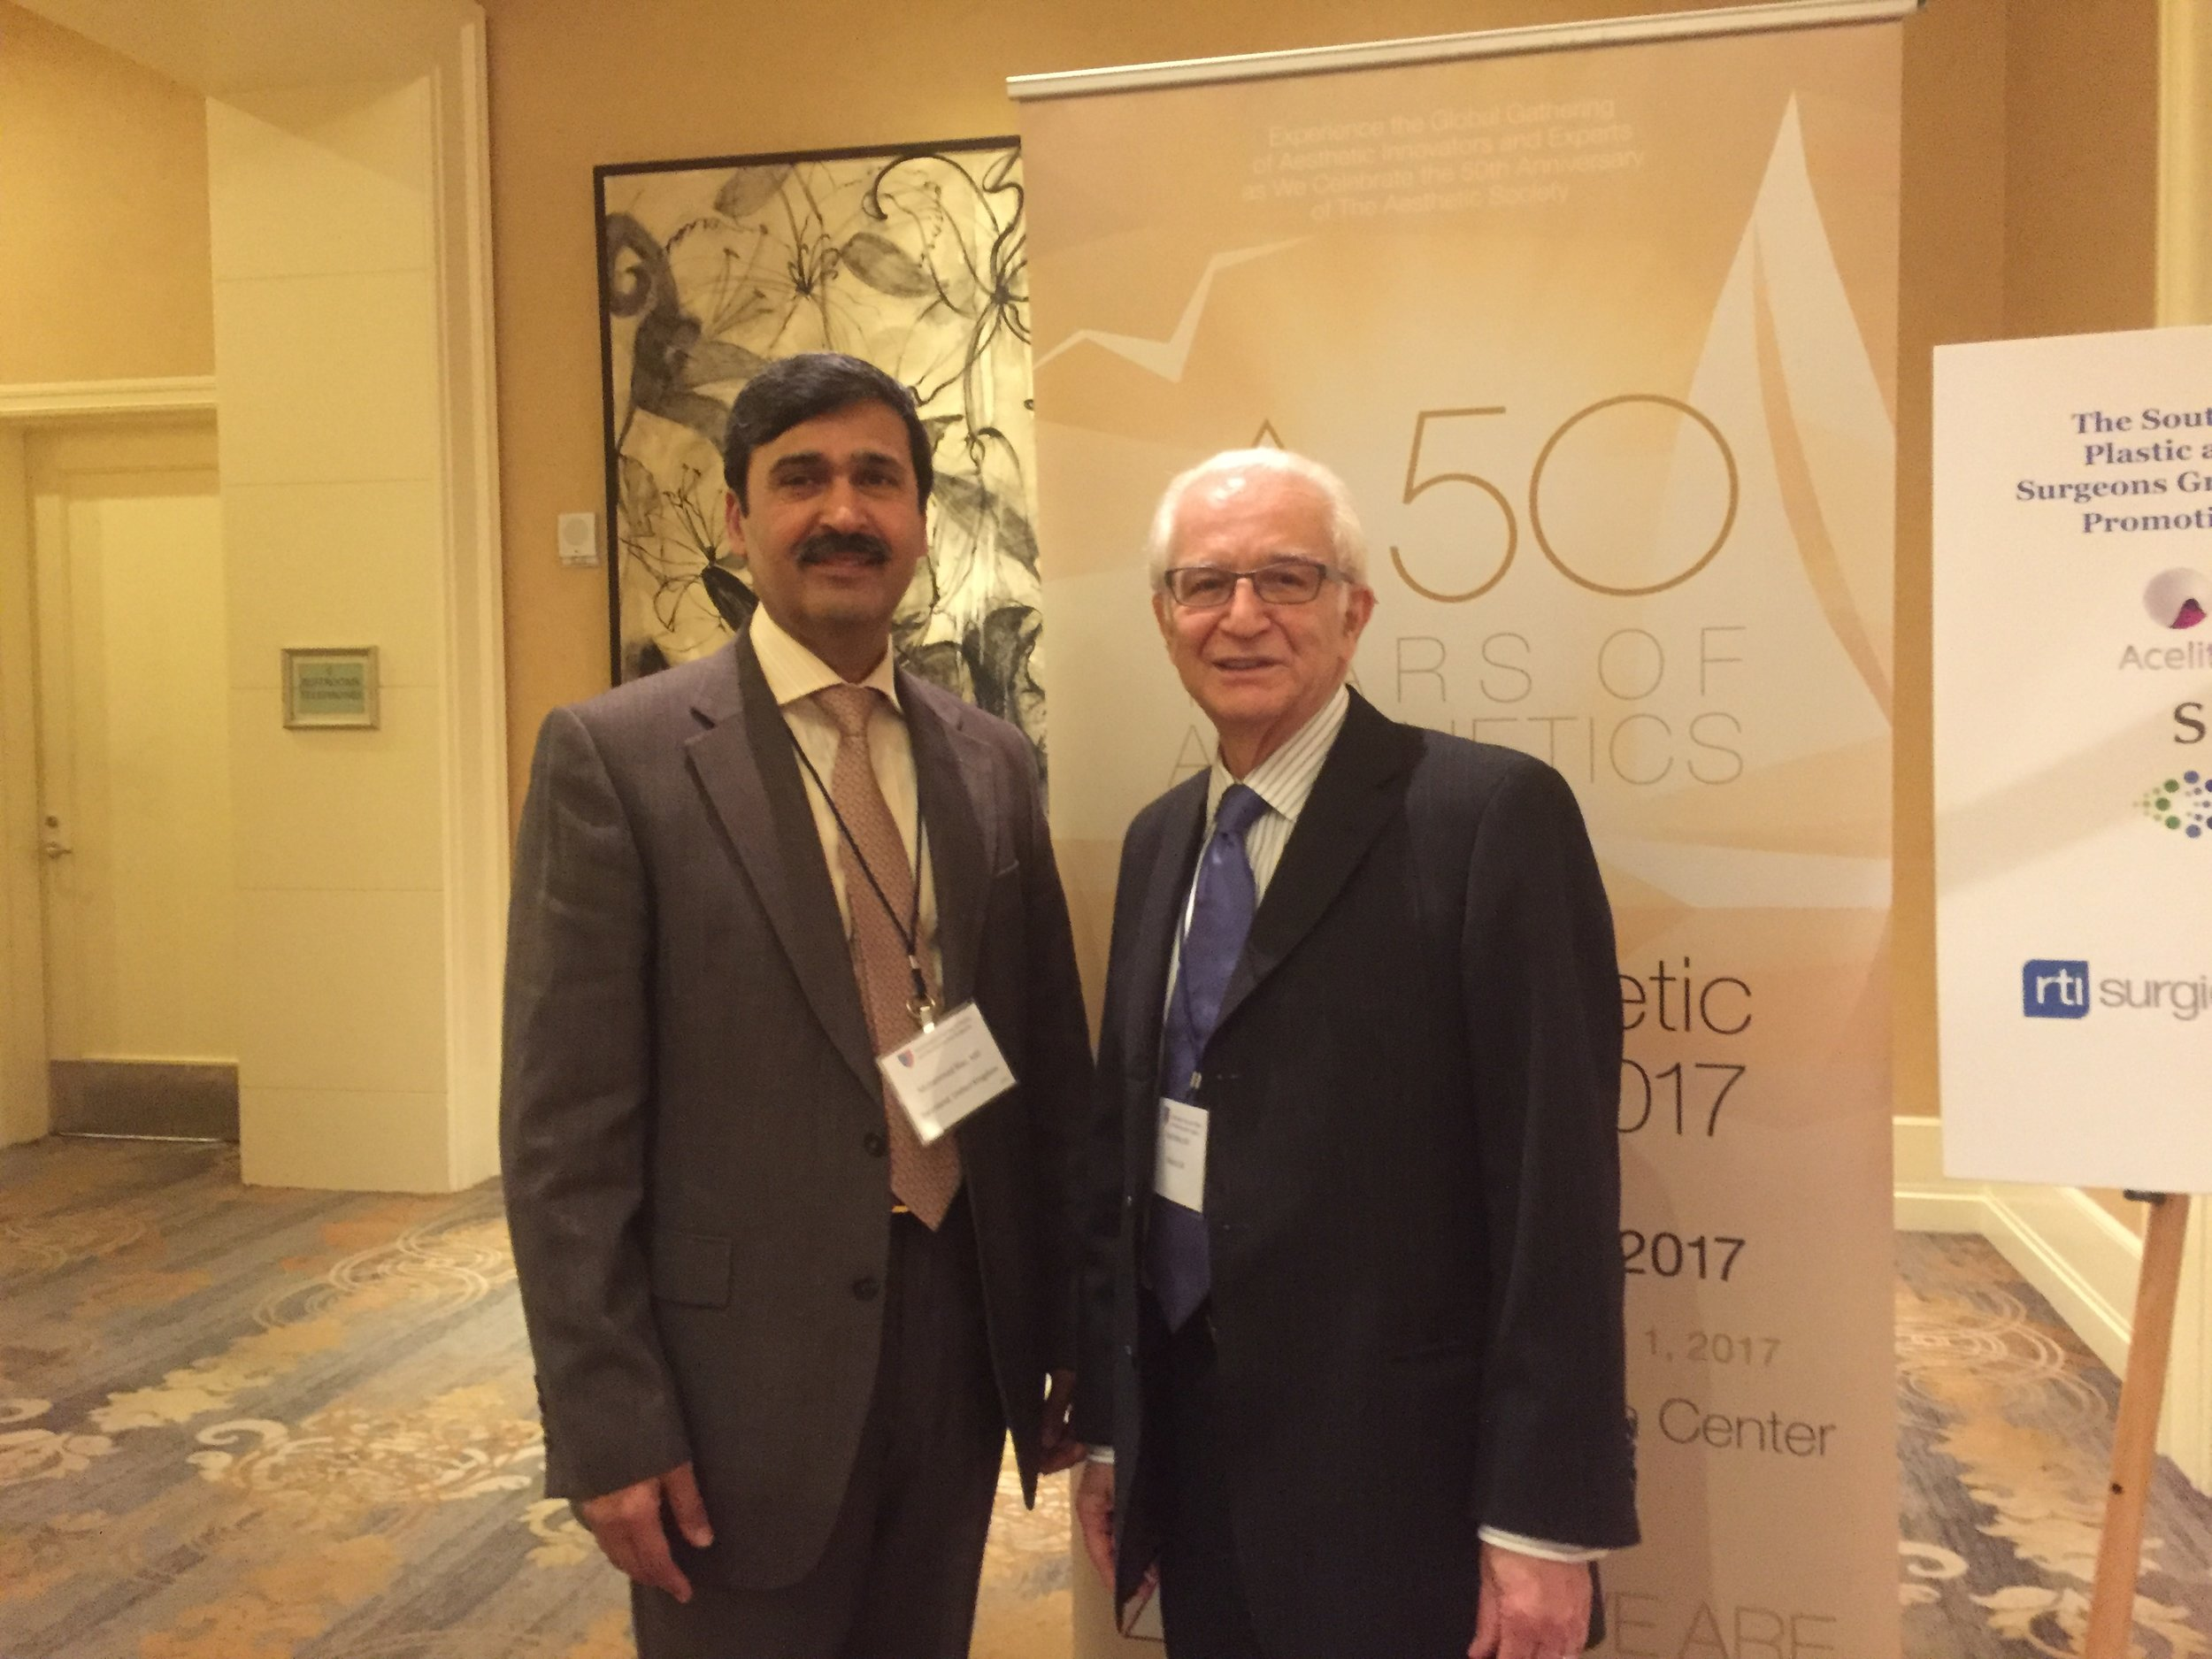 With Dr Foad Nahai